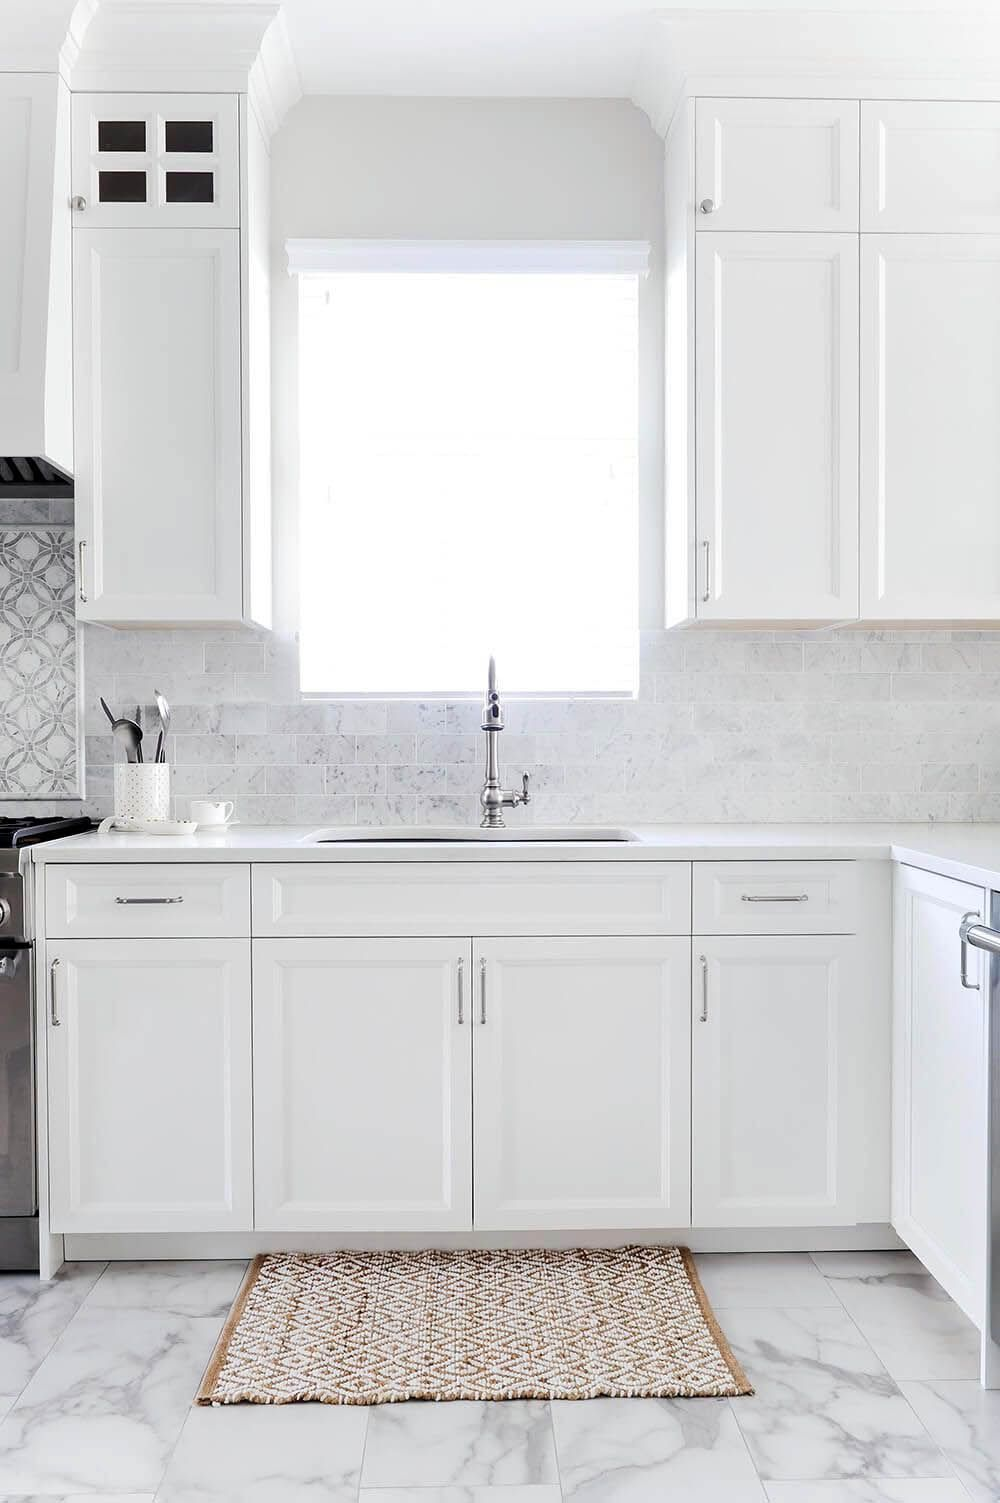 Cool Kitchen Cabinet Refacing Buffalo Ny That Will Blow Your Mind Kitchenremodelbuffal Timeless Kitchen Cabinets Luxury Kitchen Cabinets Kitchen Remodel Small